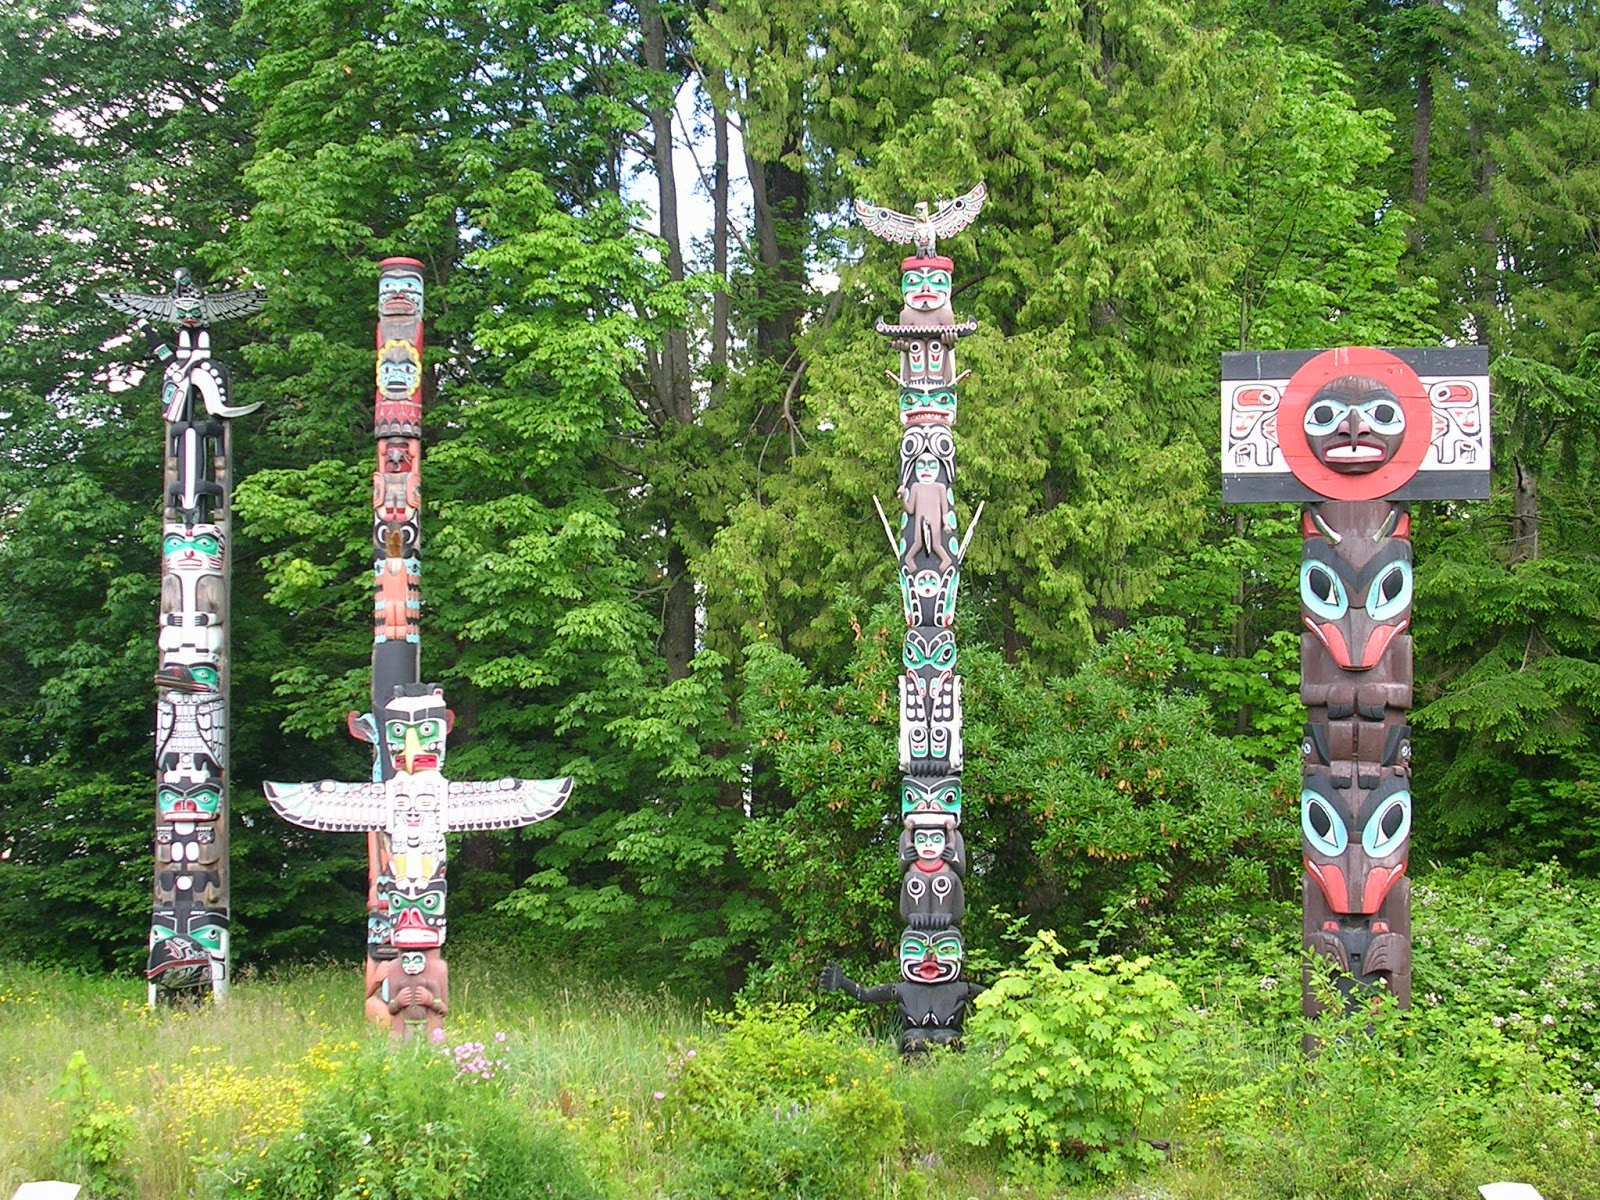 Native Americans American Indian Totem Poles